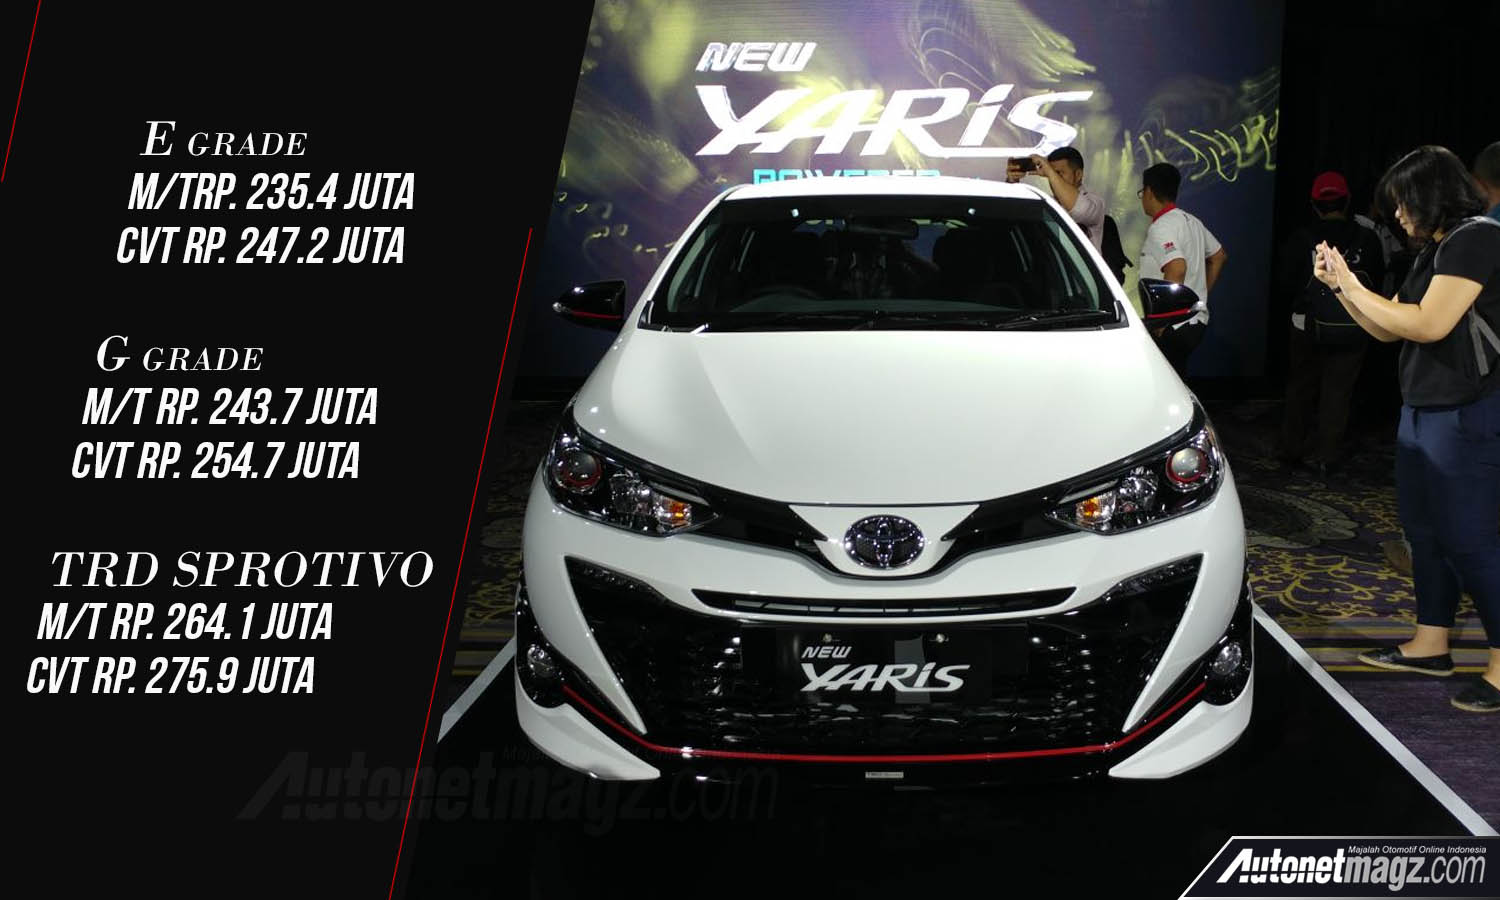 toyota yaris trd sportivo 2018 price list grand new avanza harga facelift  autonetmagz review